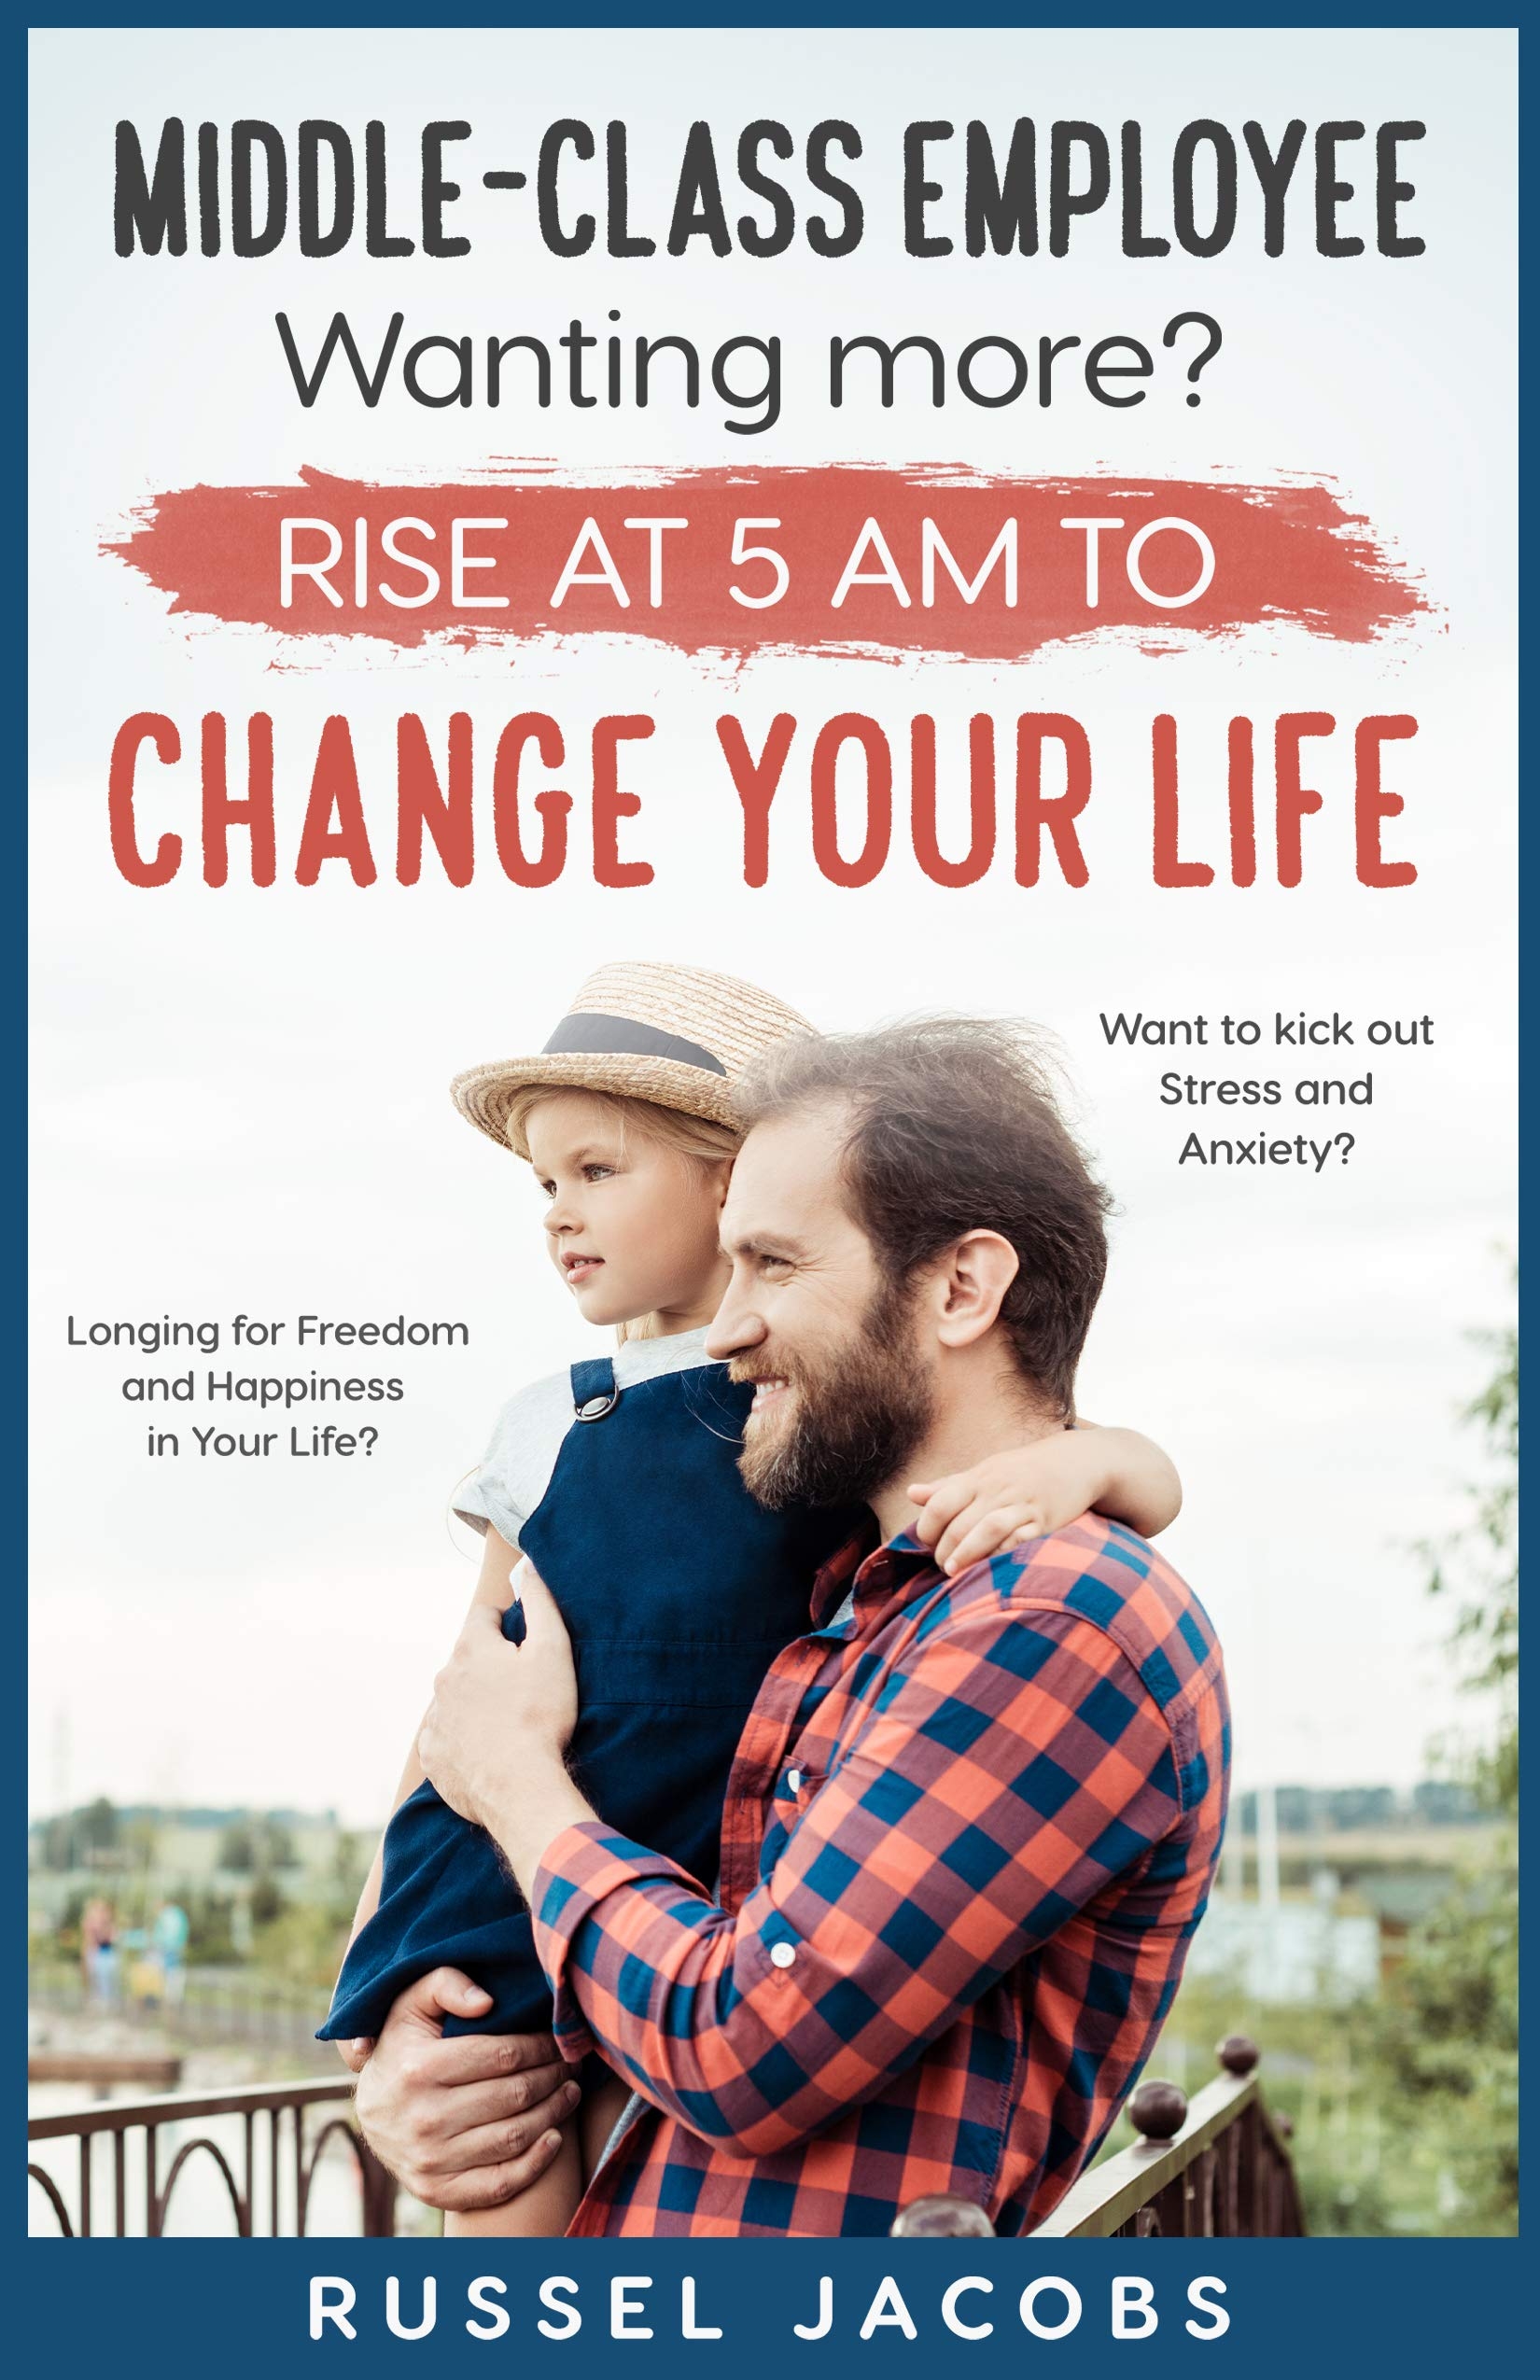 MIDDLE-CLASS EMPLOYEE Wanting More? Rise at 5am to CHANGE YOUR LIFE.: Longing for Freedom and Happiness in Your Life? Want to kick Out Stress and Anxiety?